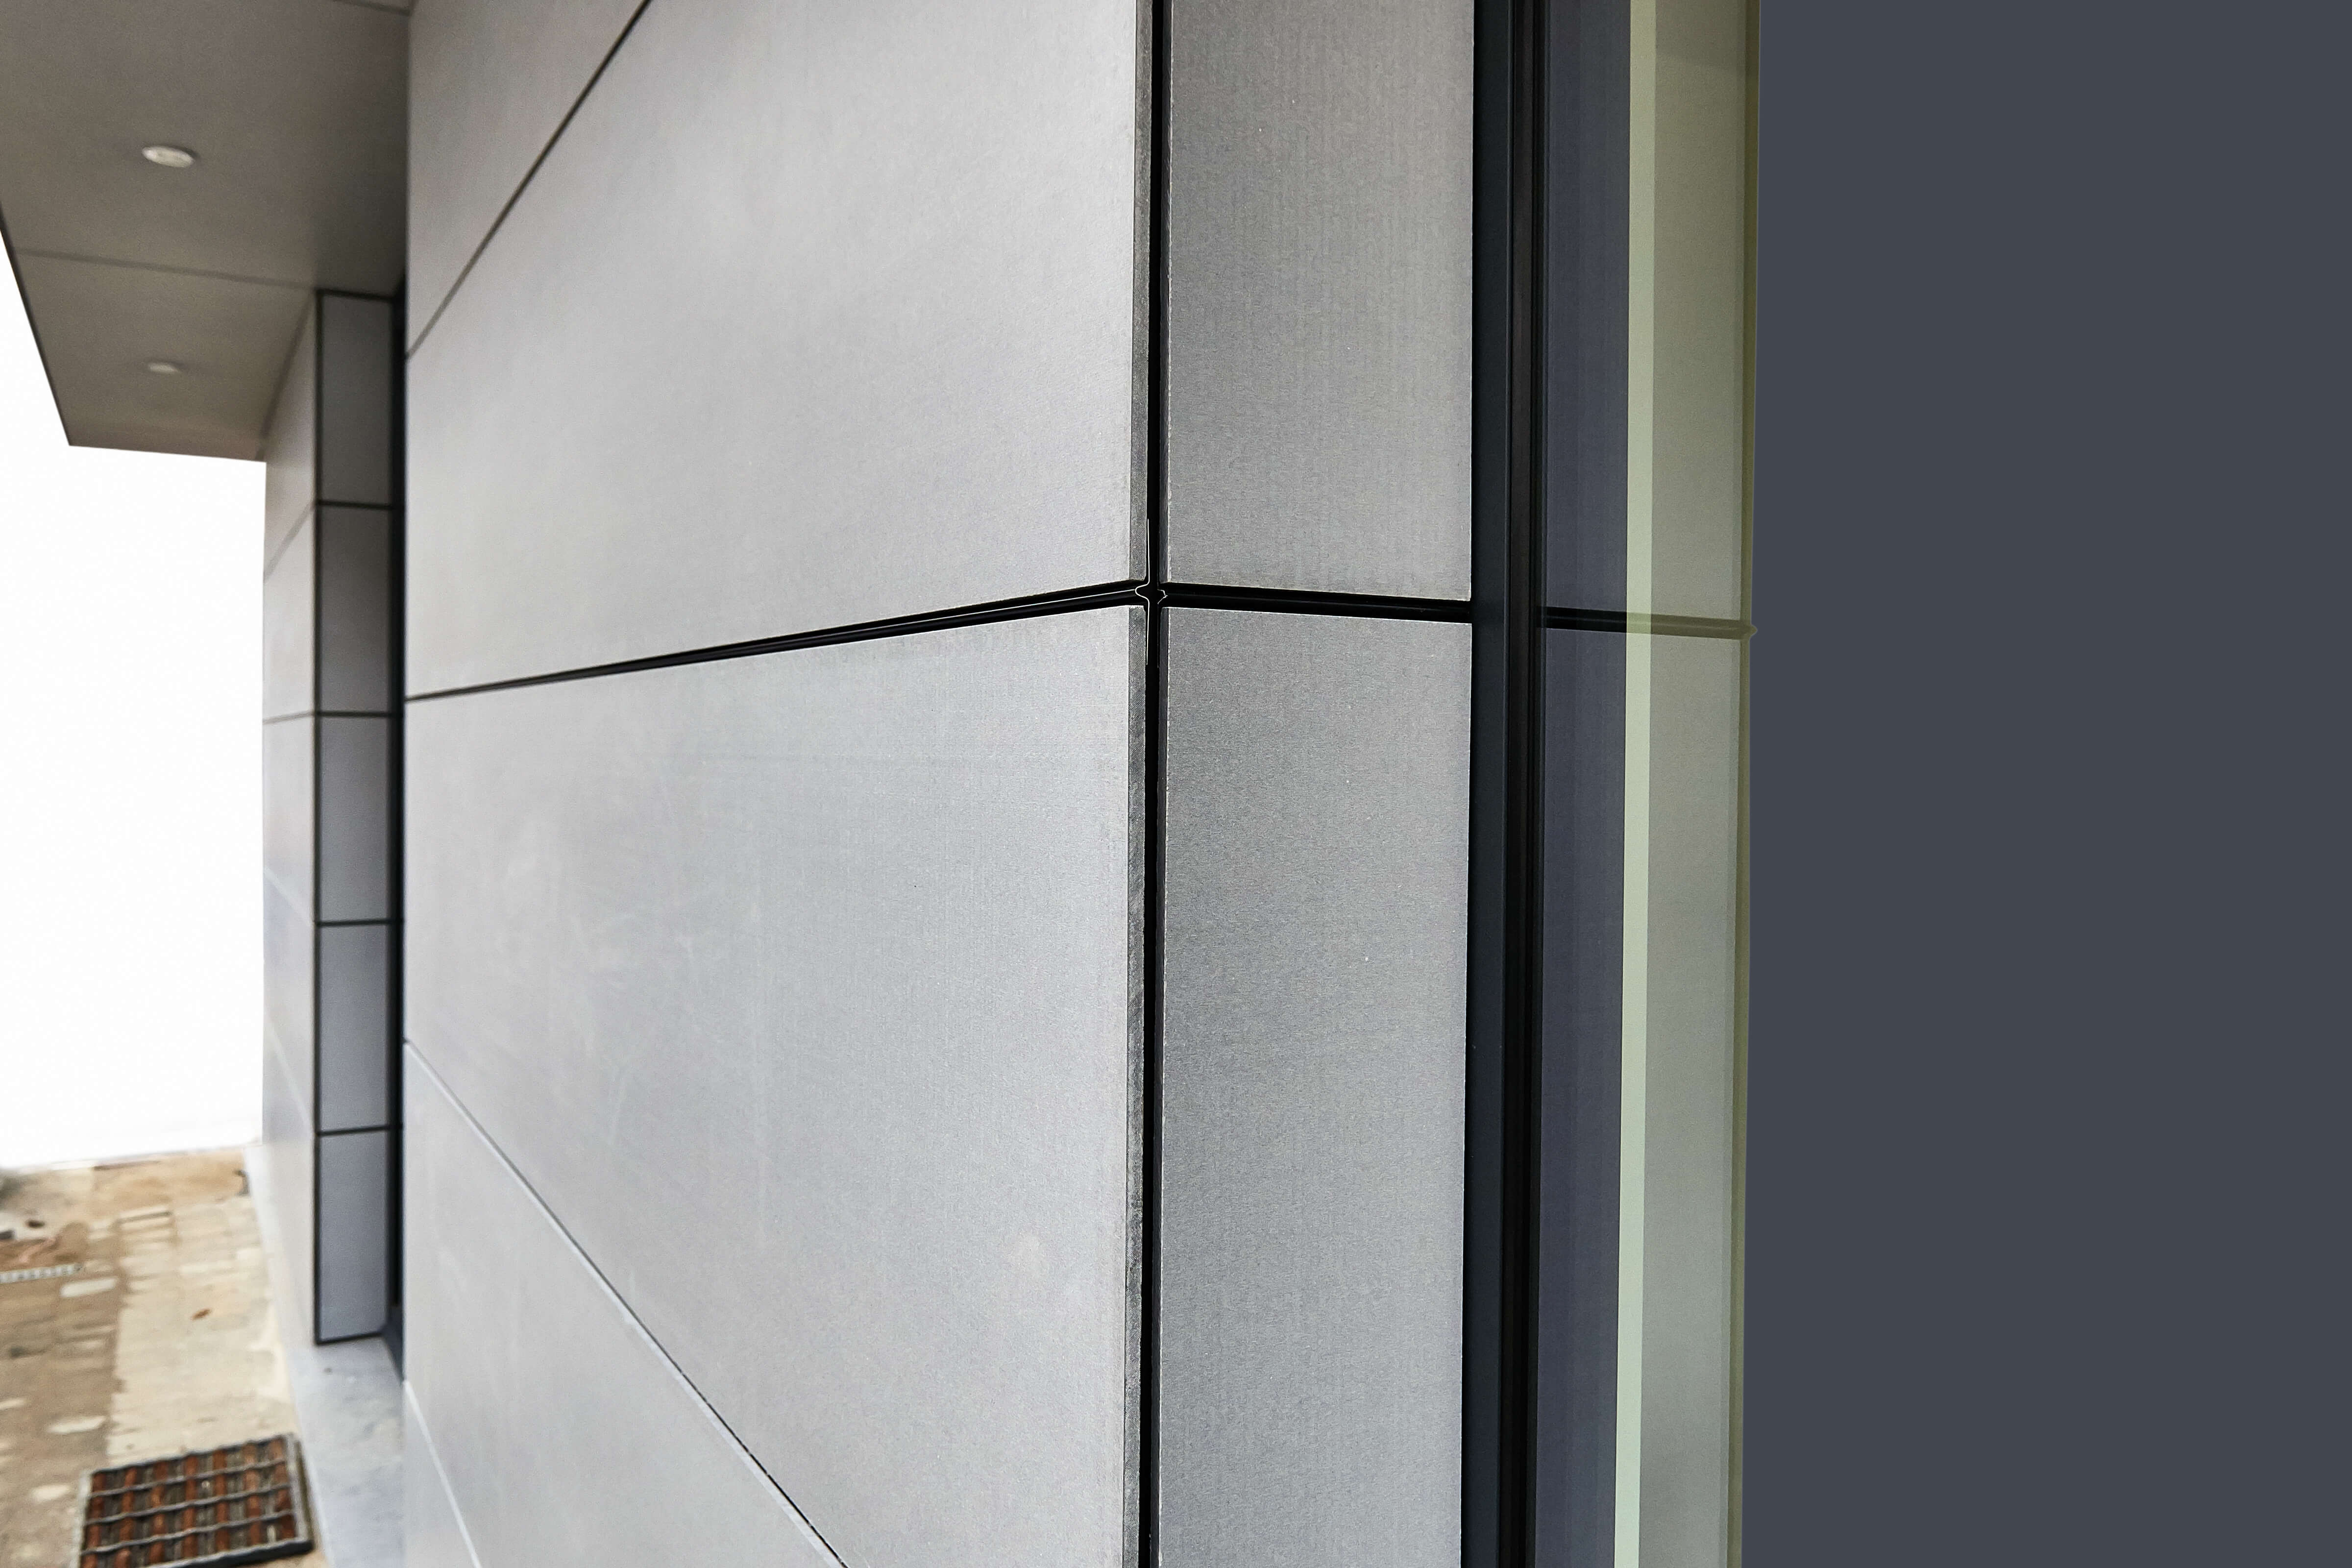 Exterior cladding of a residential building carpentry service queensland